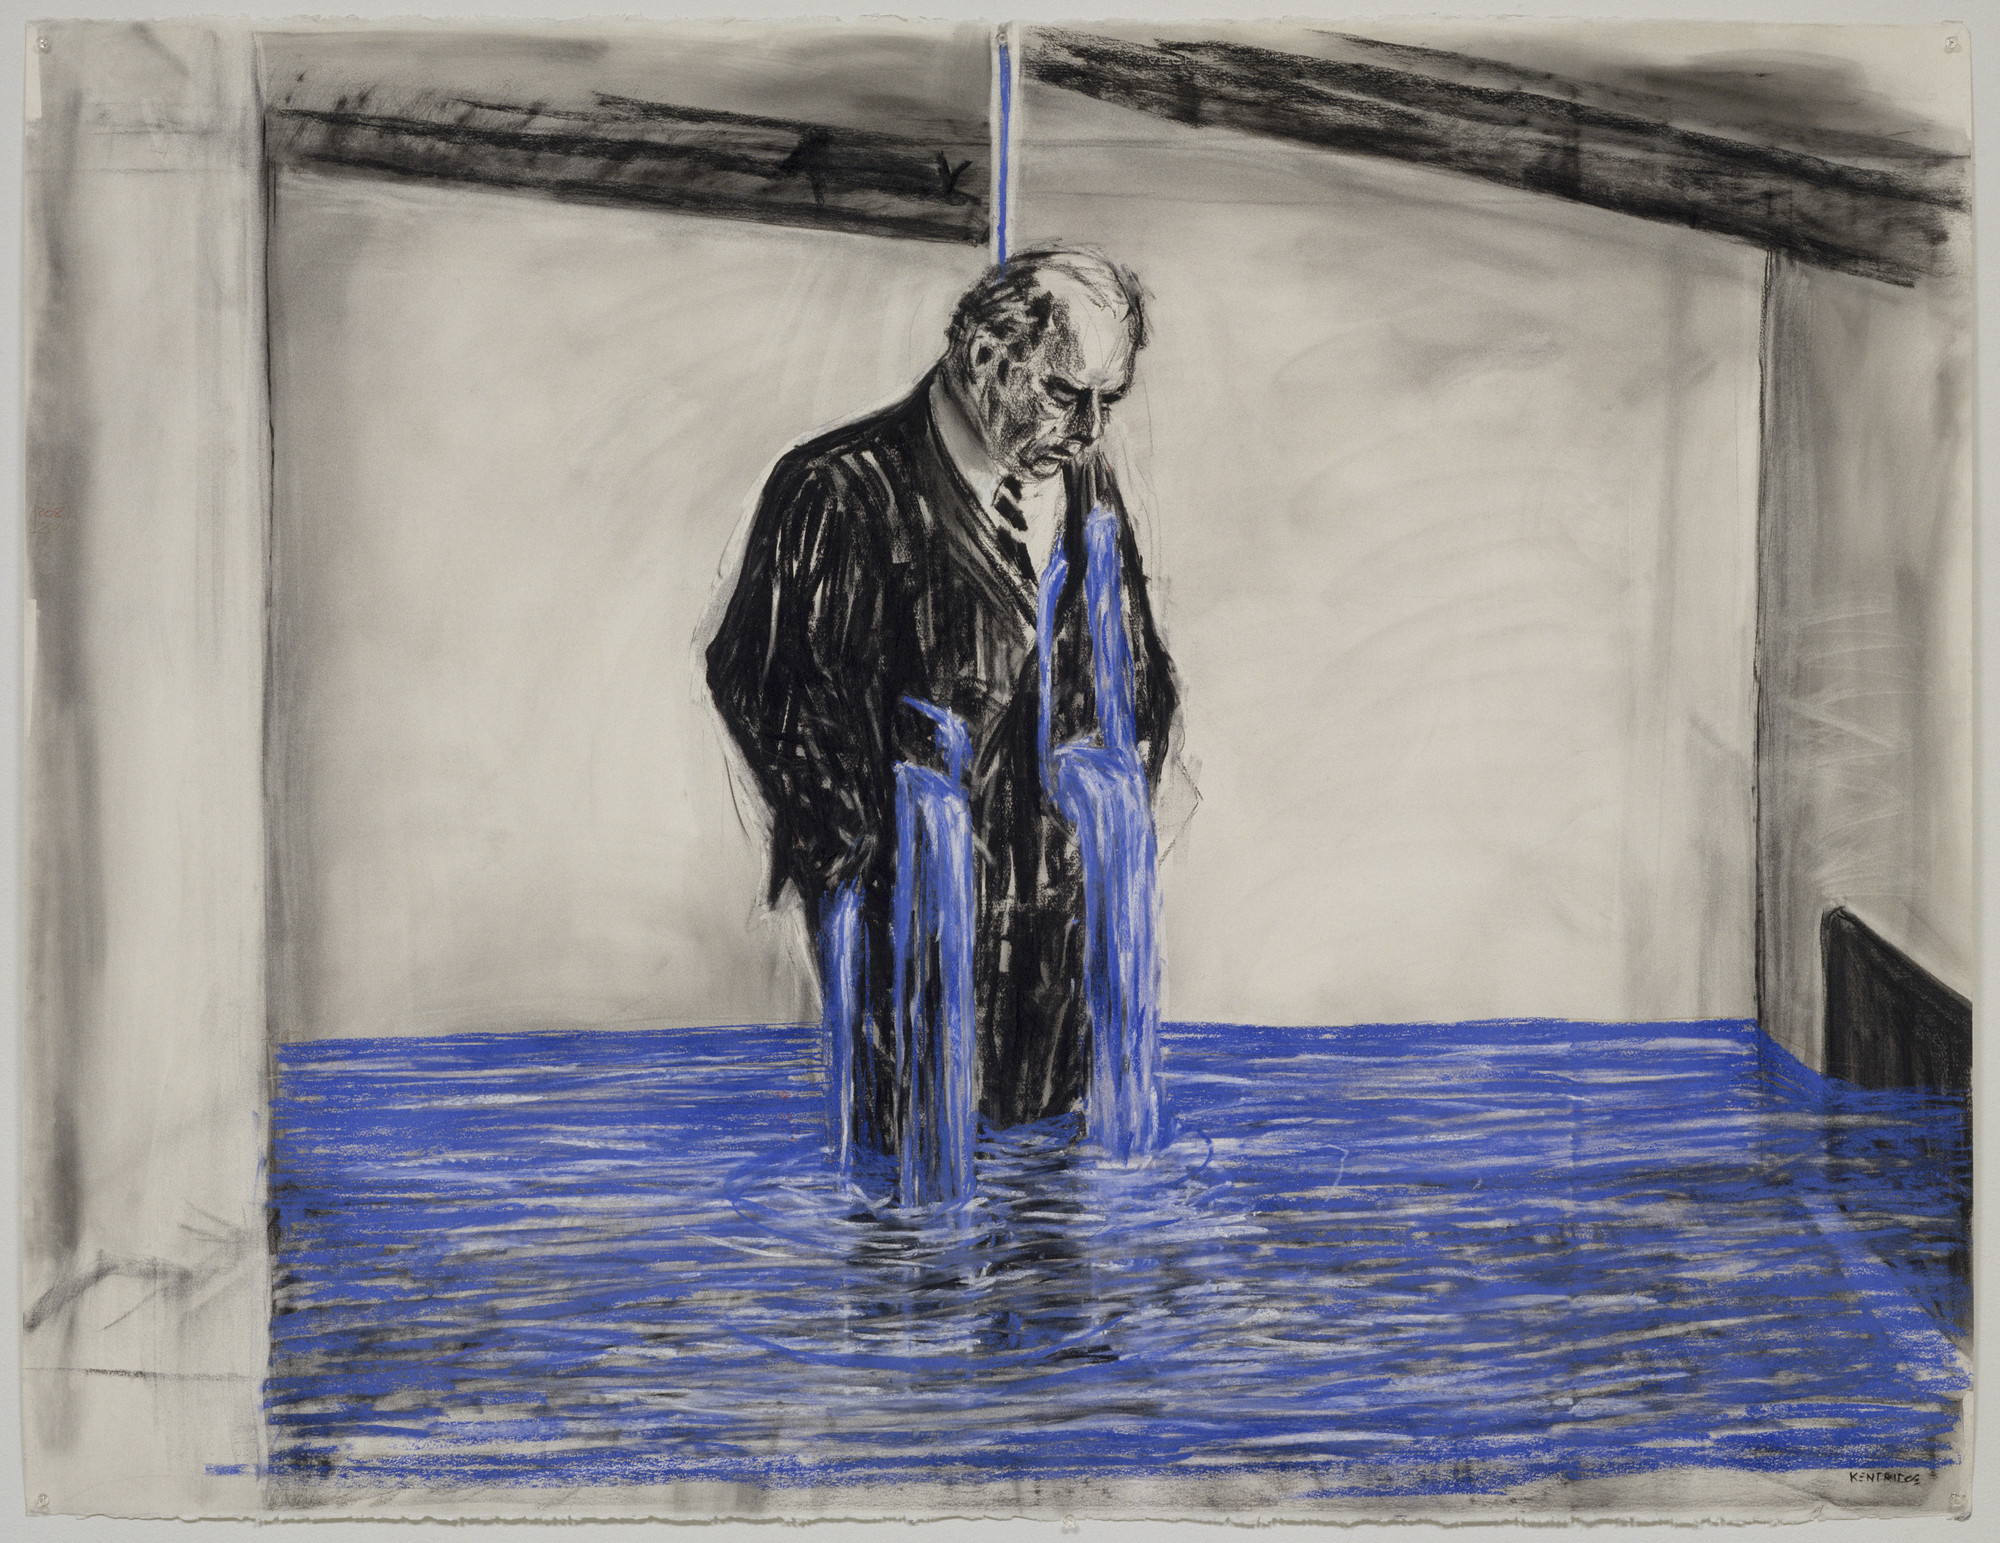 William Kentridge. Drawing from Stereoscope. 1998–99. Charcoal, pastel, and colored pencil on paper, 47 1/4 × 63″ (120 × 160 cm). The Museum of Modern Art, New York. Gift of The Junior Associates of The Museum of Modern Art, with special contributions from Anonymous, Scott J. Lorinsky, Yasufumi Nakamura, and The Wider Foundation